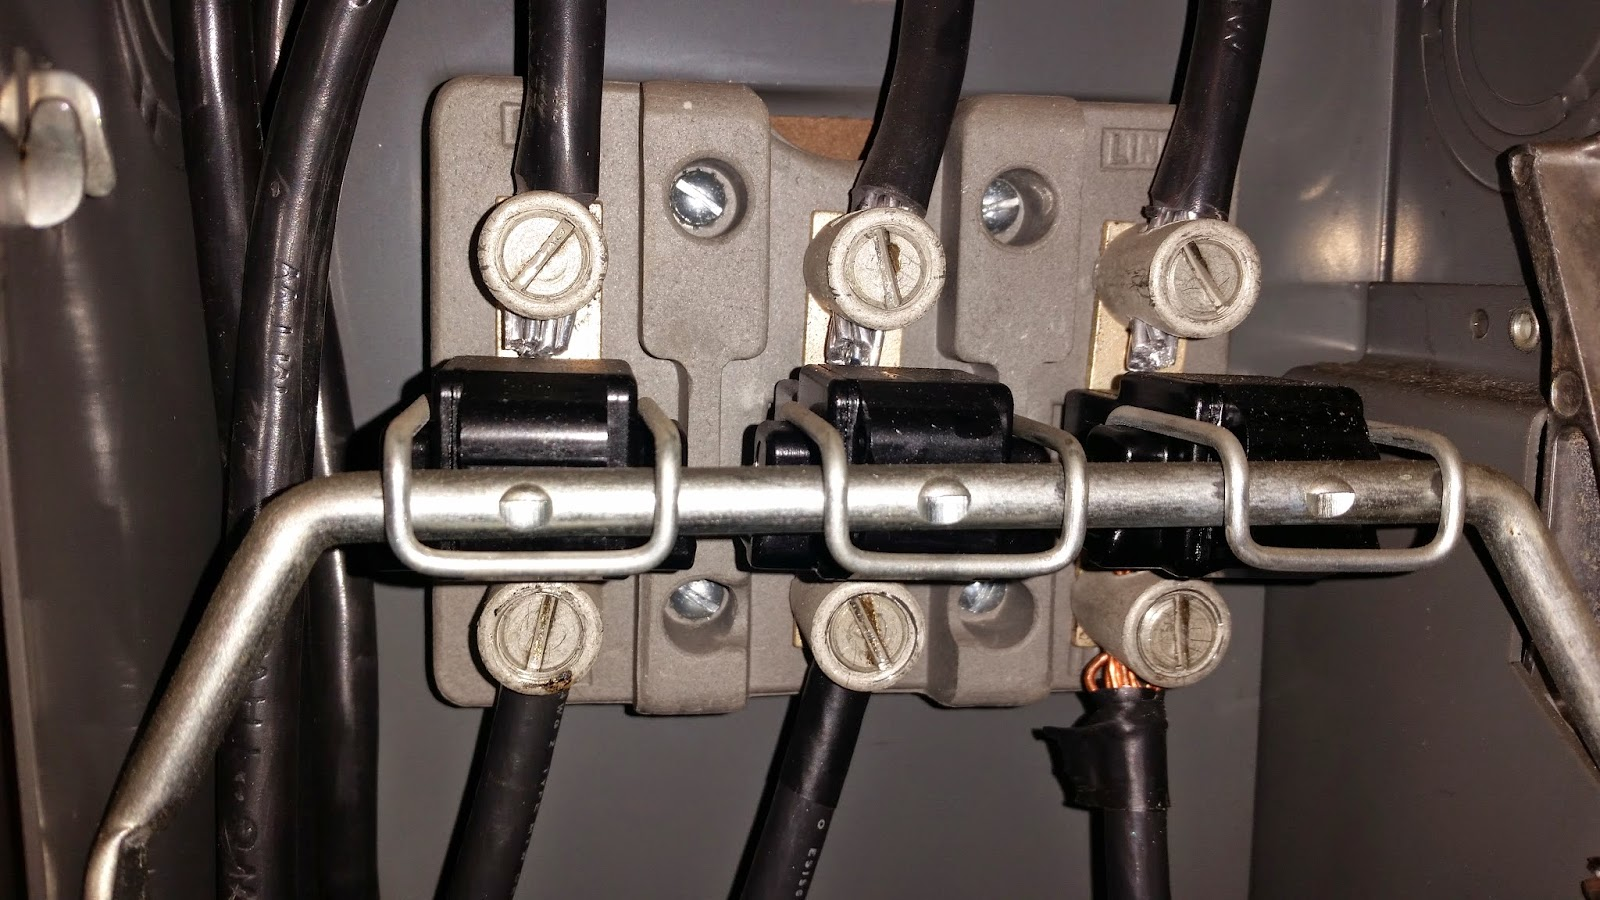 Chicago Elevator Maintenance Colley Aluminum Wiring To Copper This Is A Closer Picture Of The Connection Points On Disconnect You Can See Color Difference Between Wires Top Are And